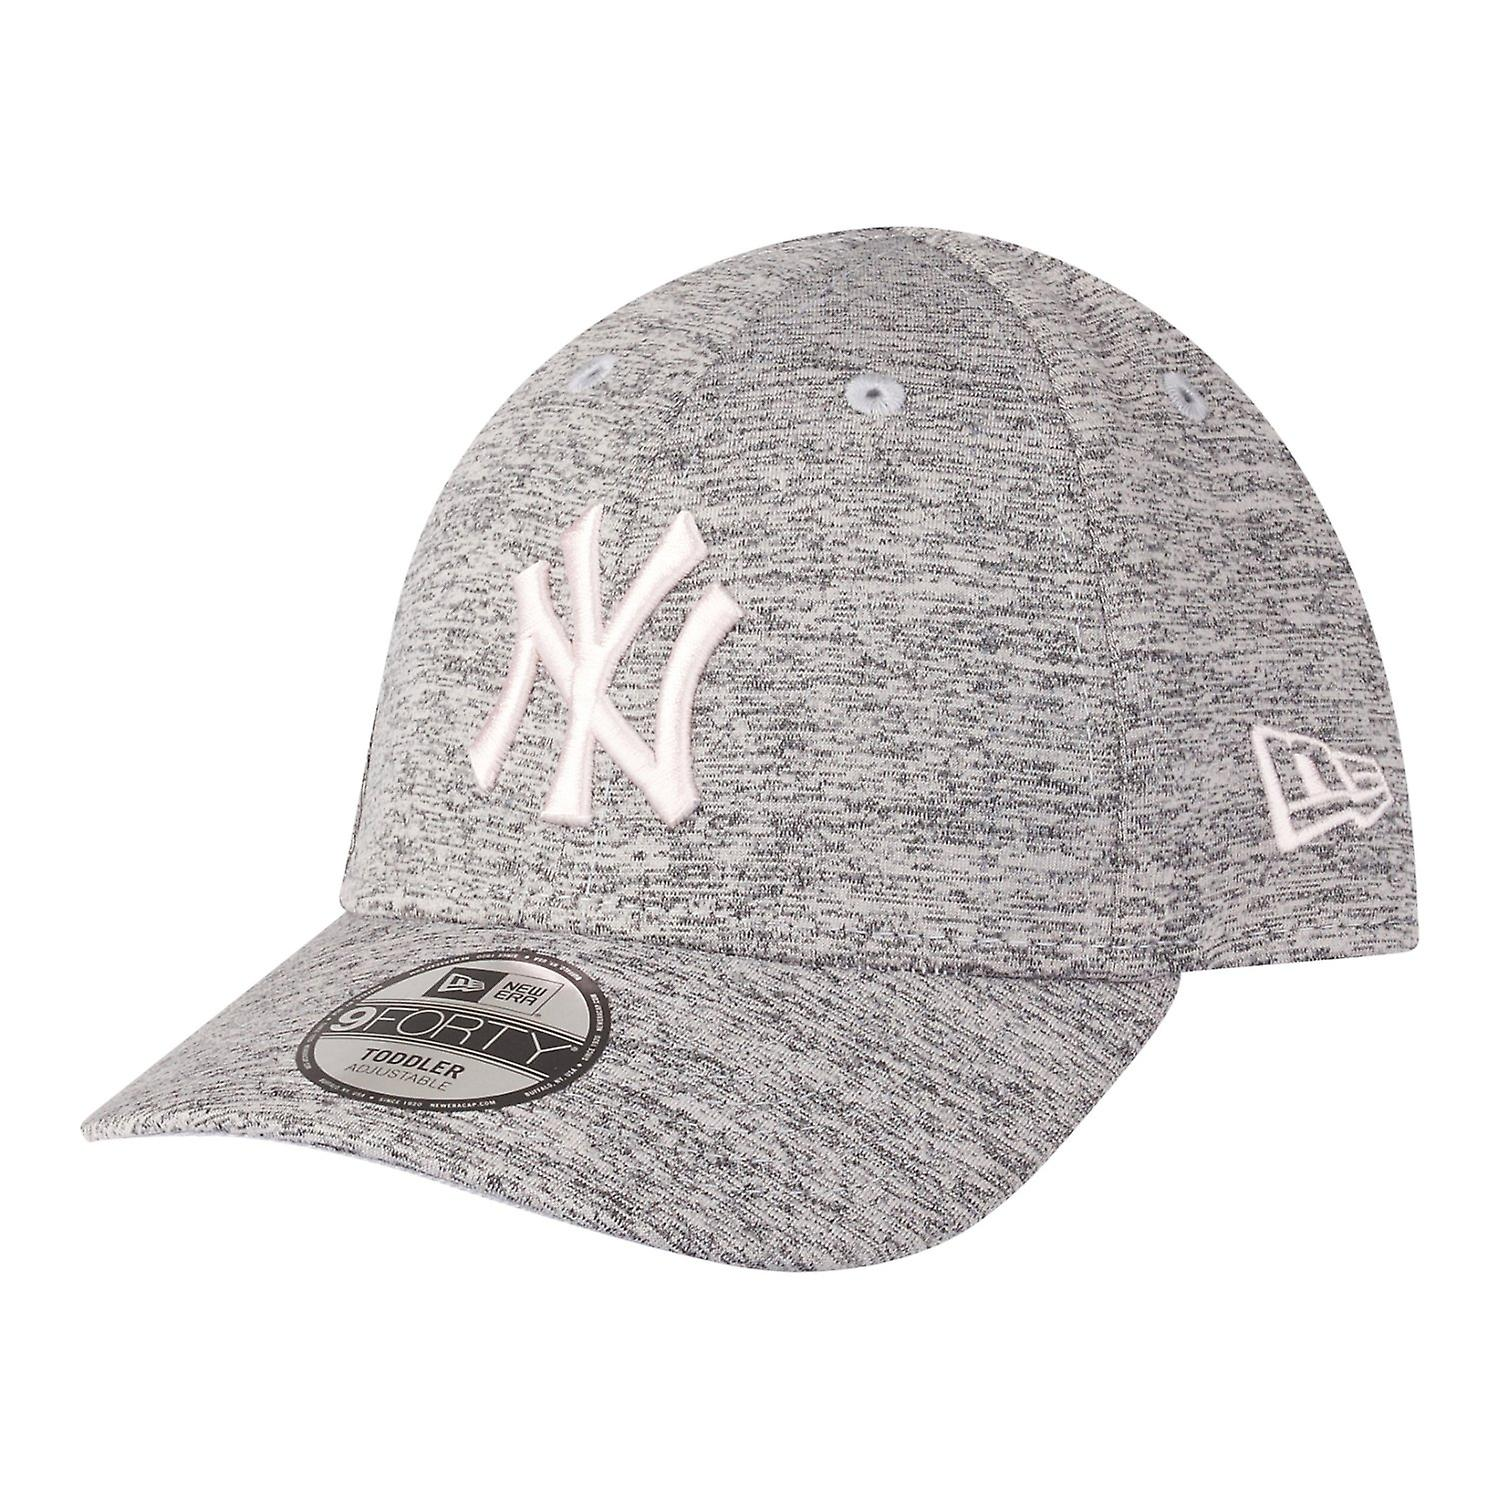 4774d2a5 New era 9Forty JERSEY girl KIDS Cap - NY Yankees grey